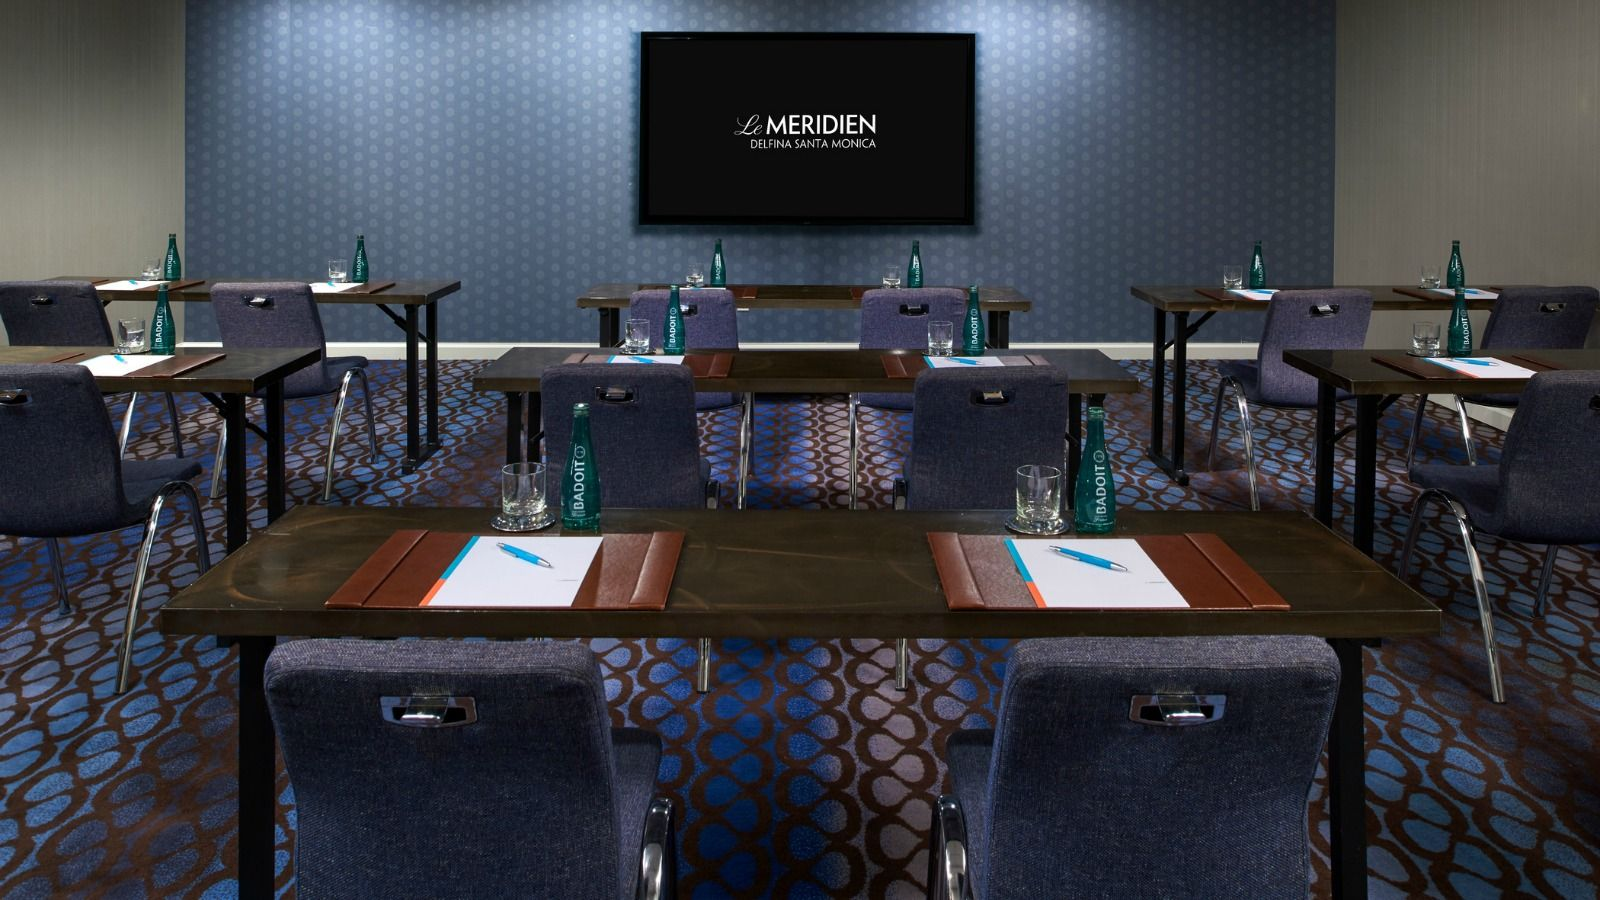 Le Meridien Delfina Santa Monica Meeting Space - Alaria